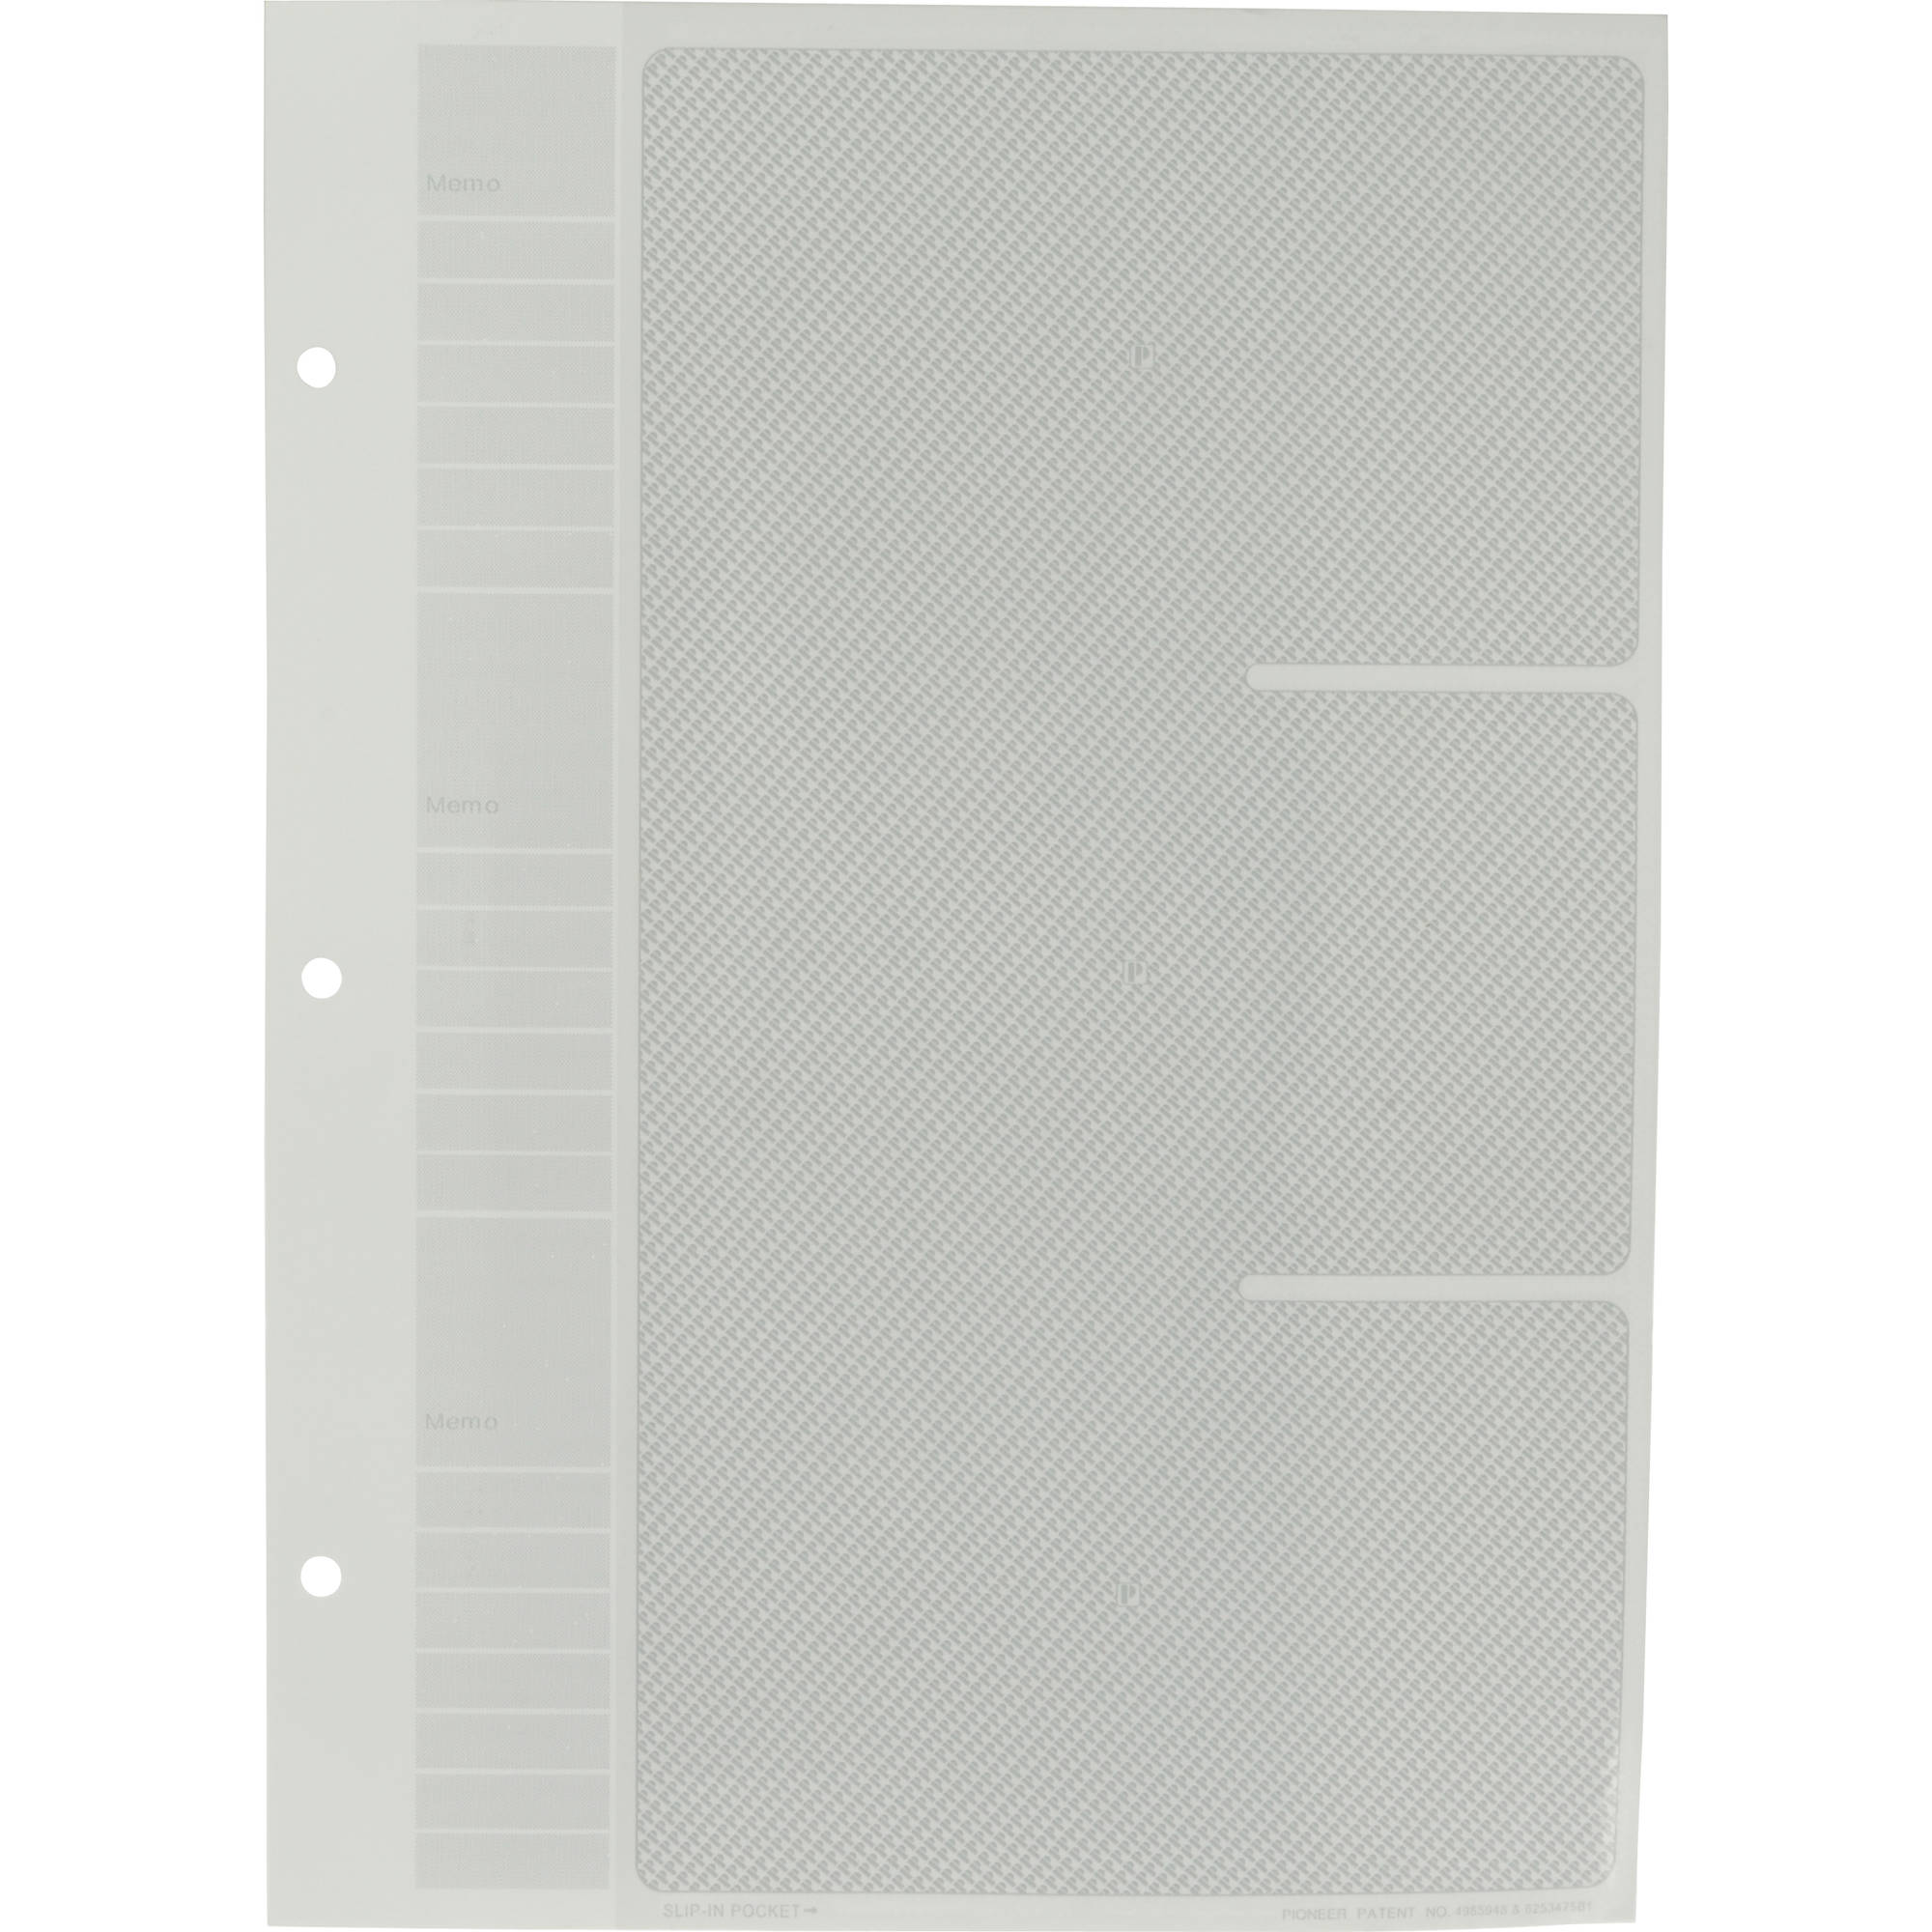 Bulk Pack Pioneer Photo Album Refill 47-APS 4 x 7 for APS-247 60 Pages//30 Sheets